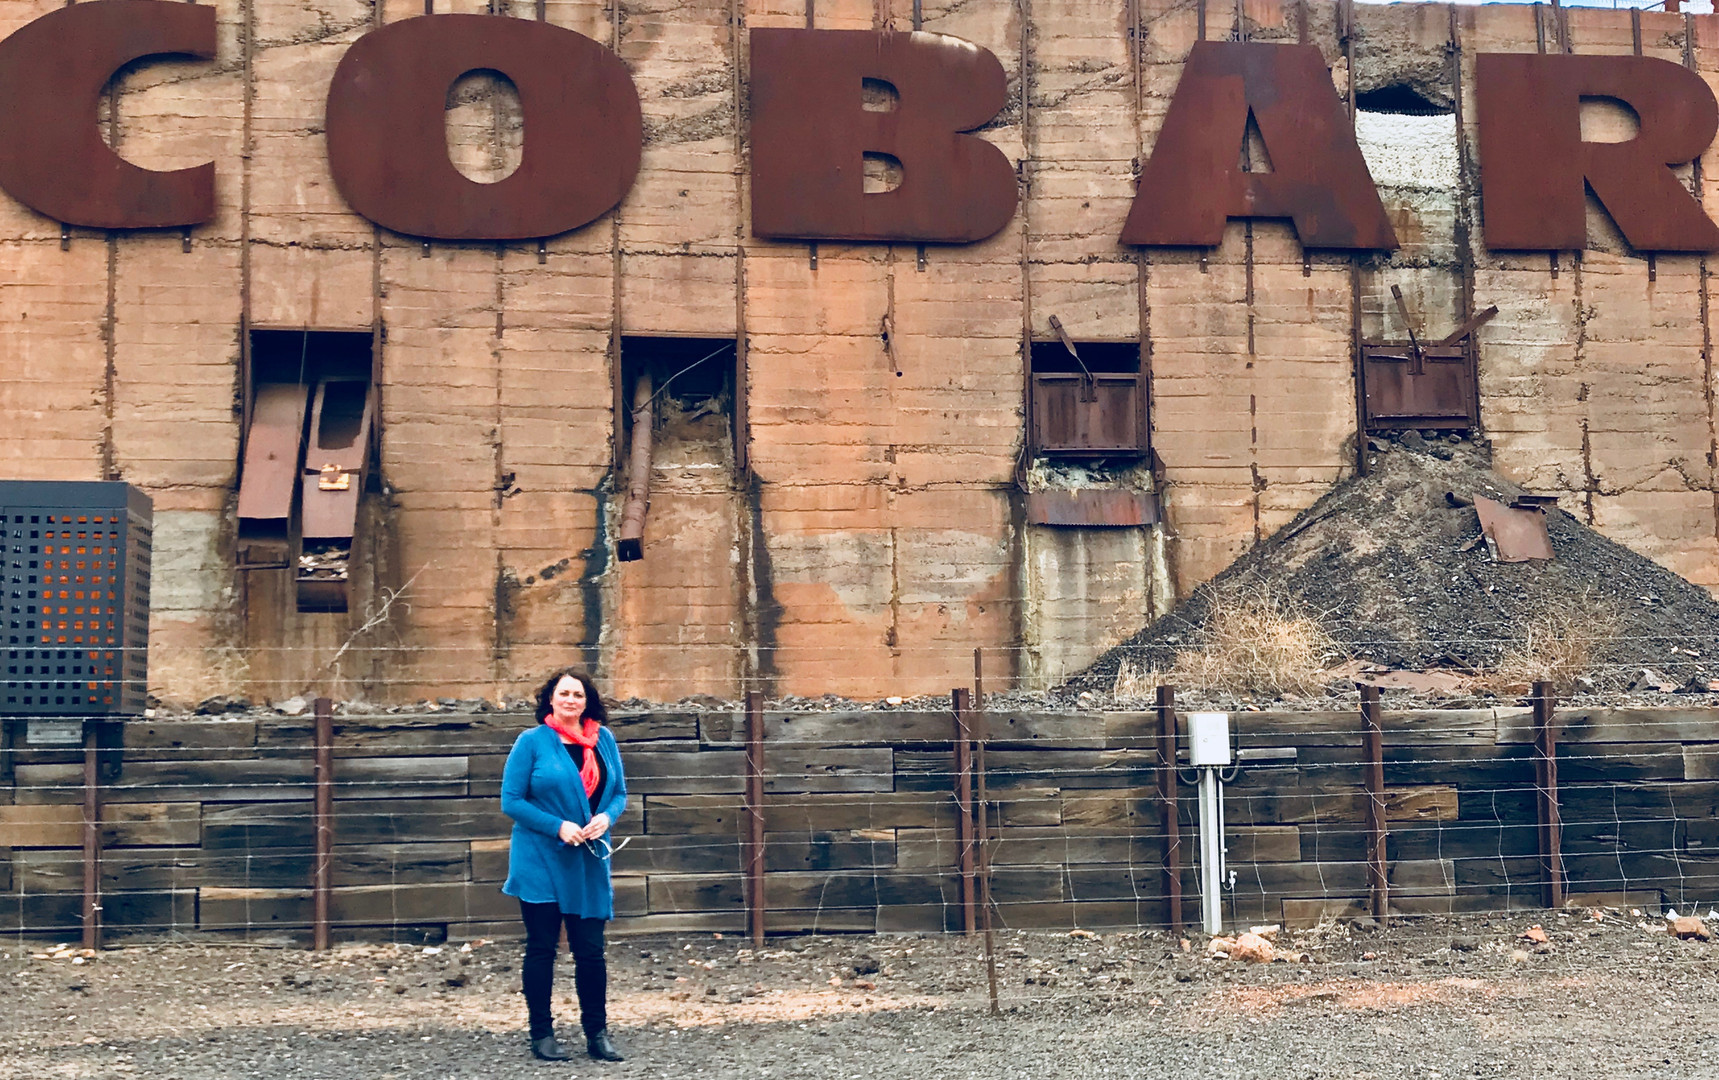 Western NSW Community Legal Centre solicitor, Tara, stands underneath a sign that reads 'Cobar'.